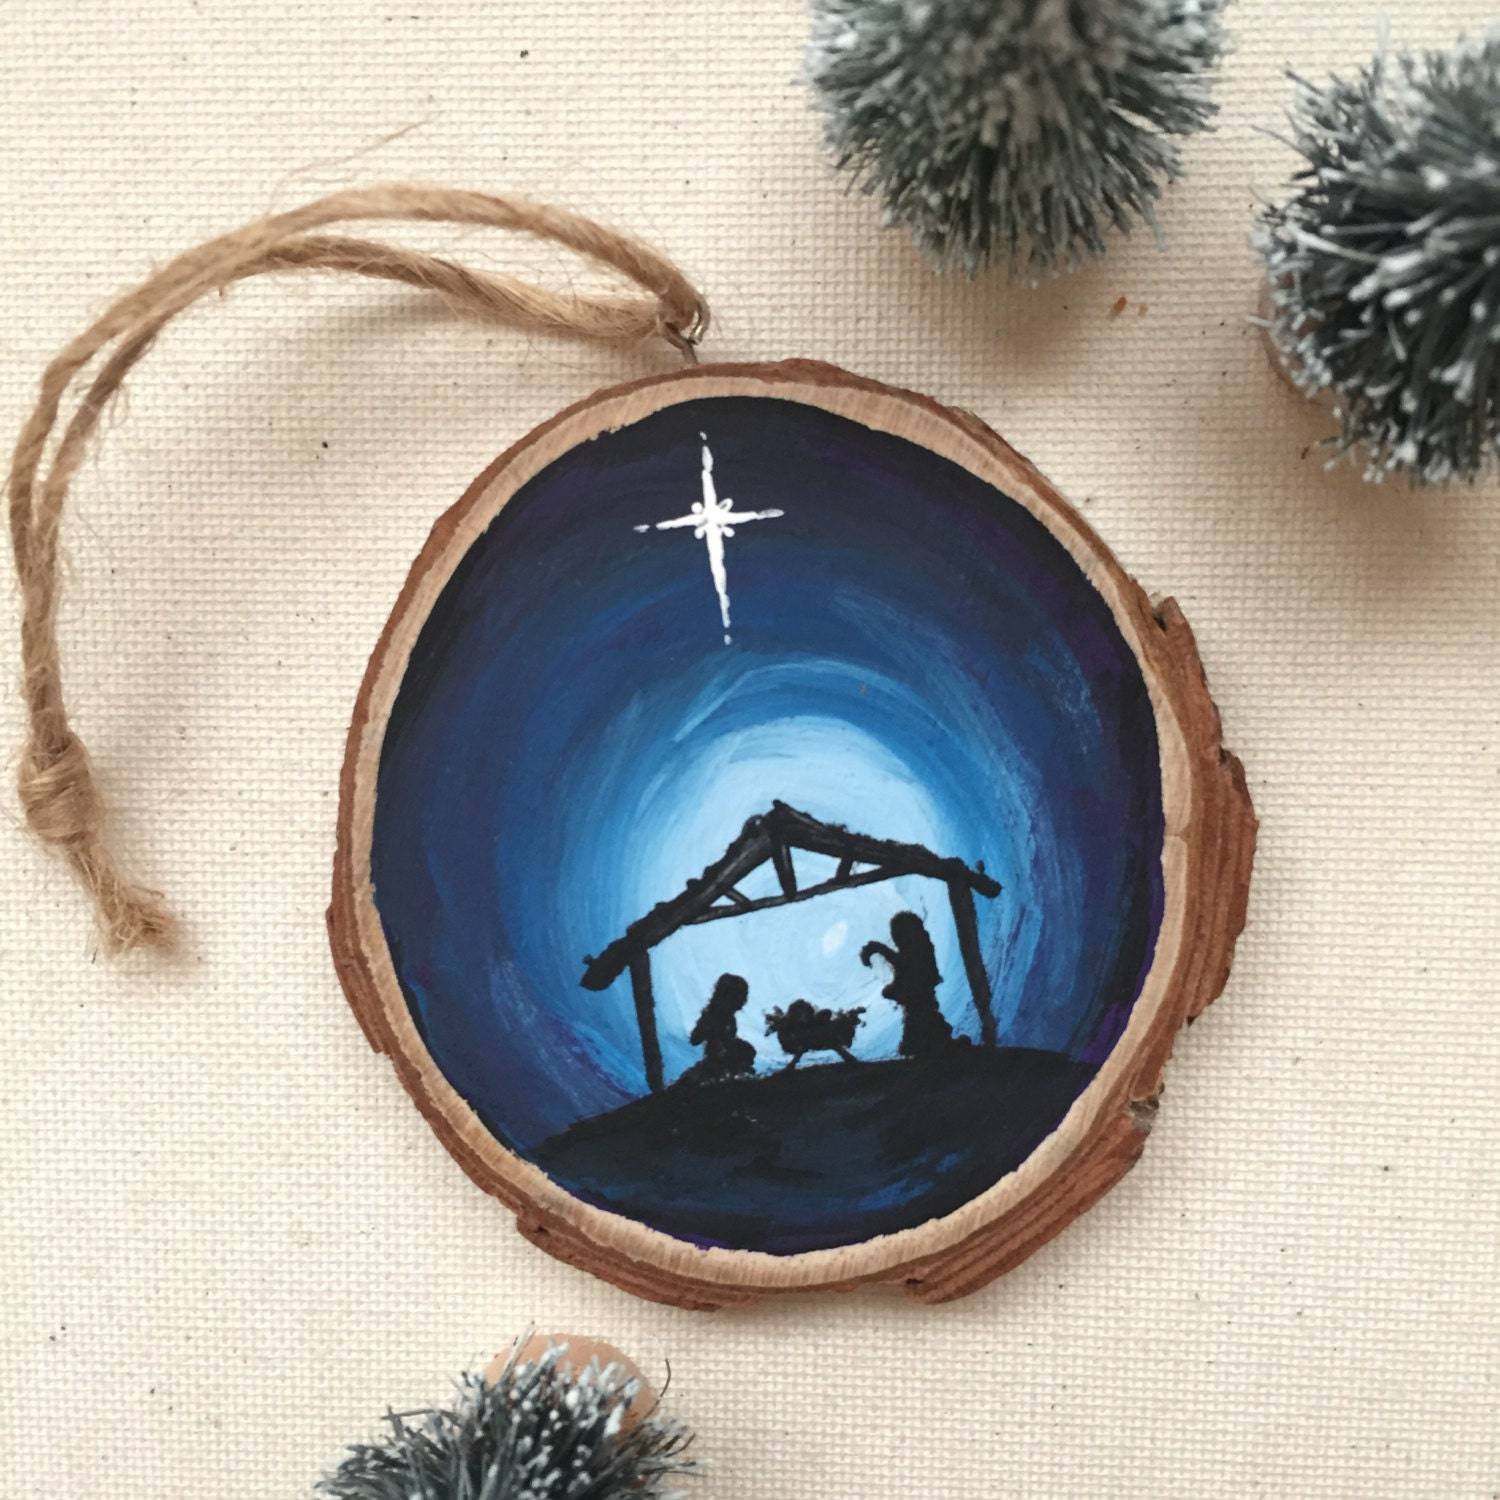 Jesus Ornaments Jesus Ornament Designs: Hand Painted Jesus Ornament Nativity Silhouette Wood Slice